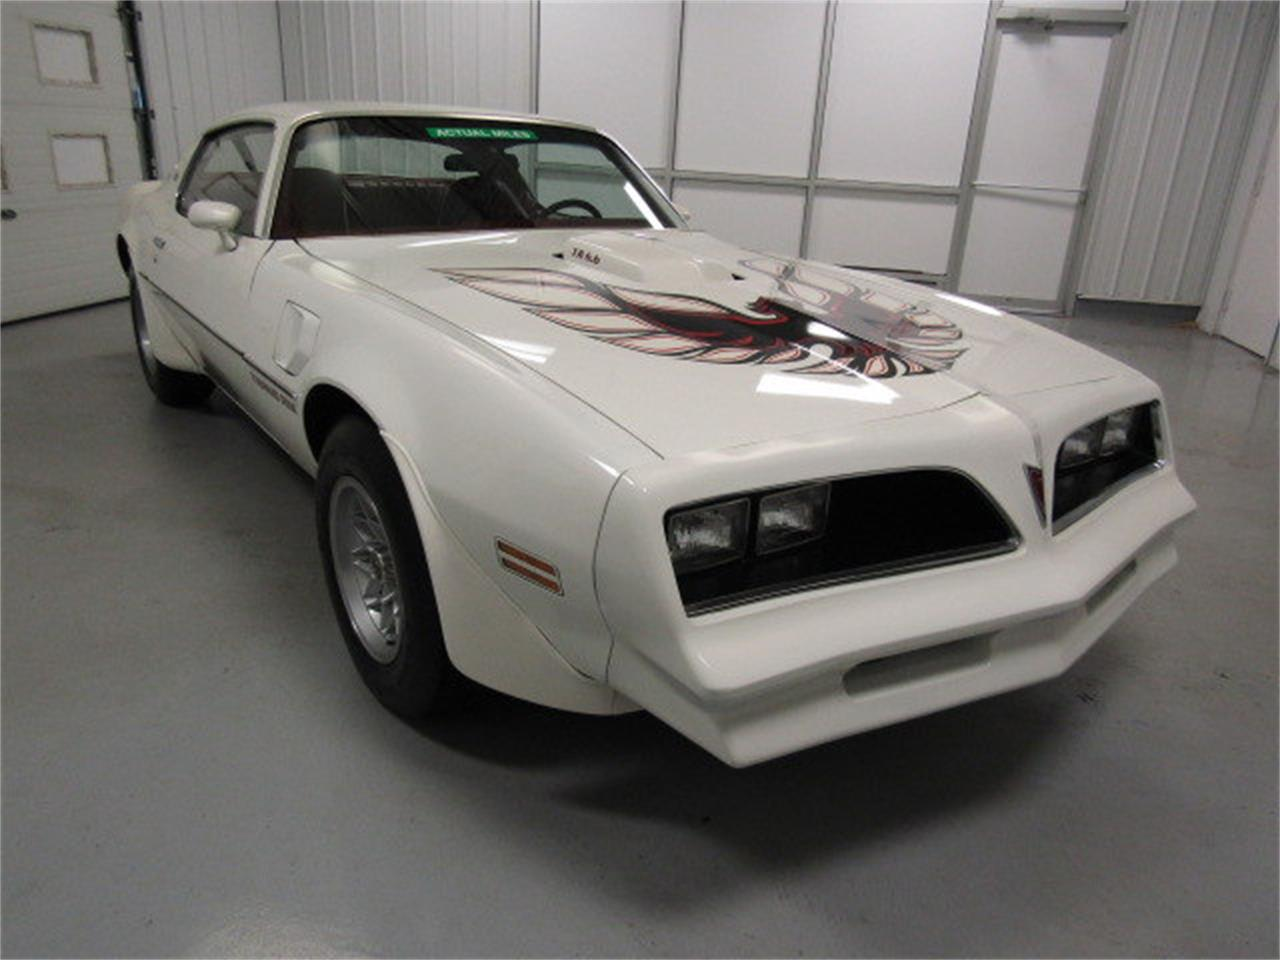 Large Picture of '78 Pontiac Firebird - $39,000.00 Offered by Duncan Imports & Classic Cars - JLC2